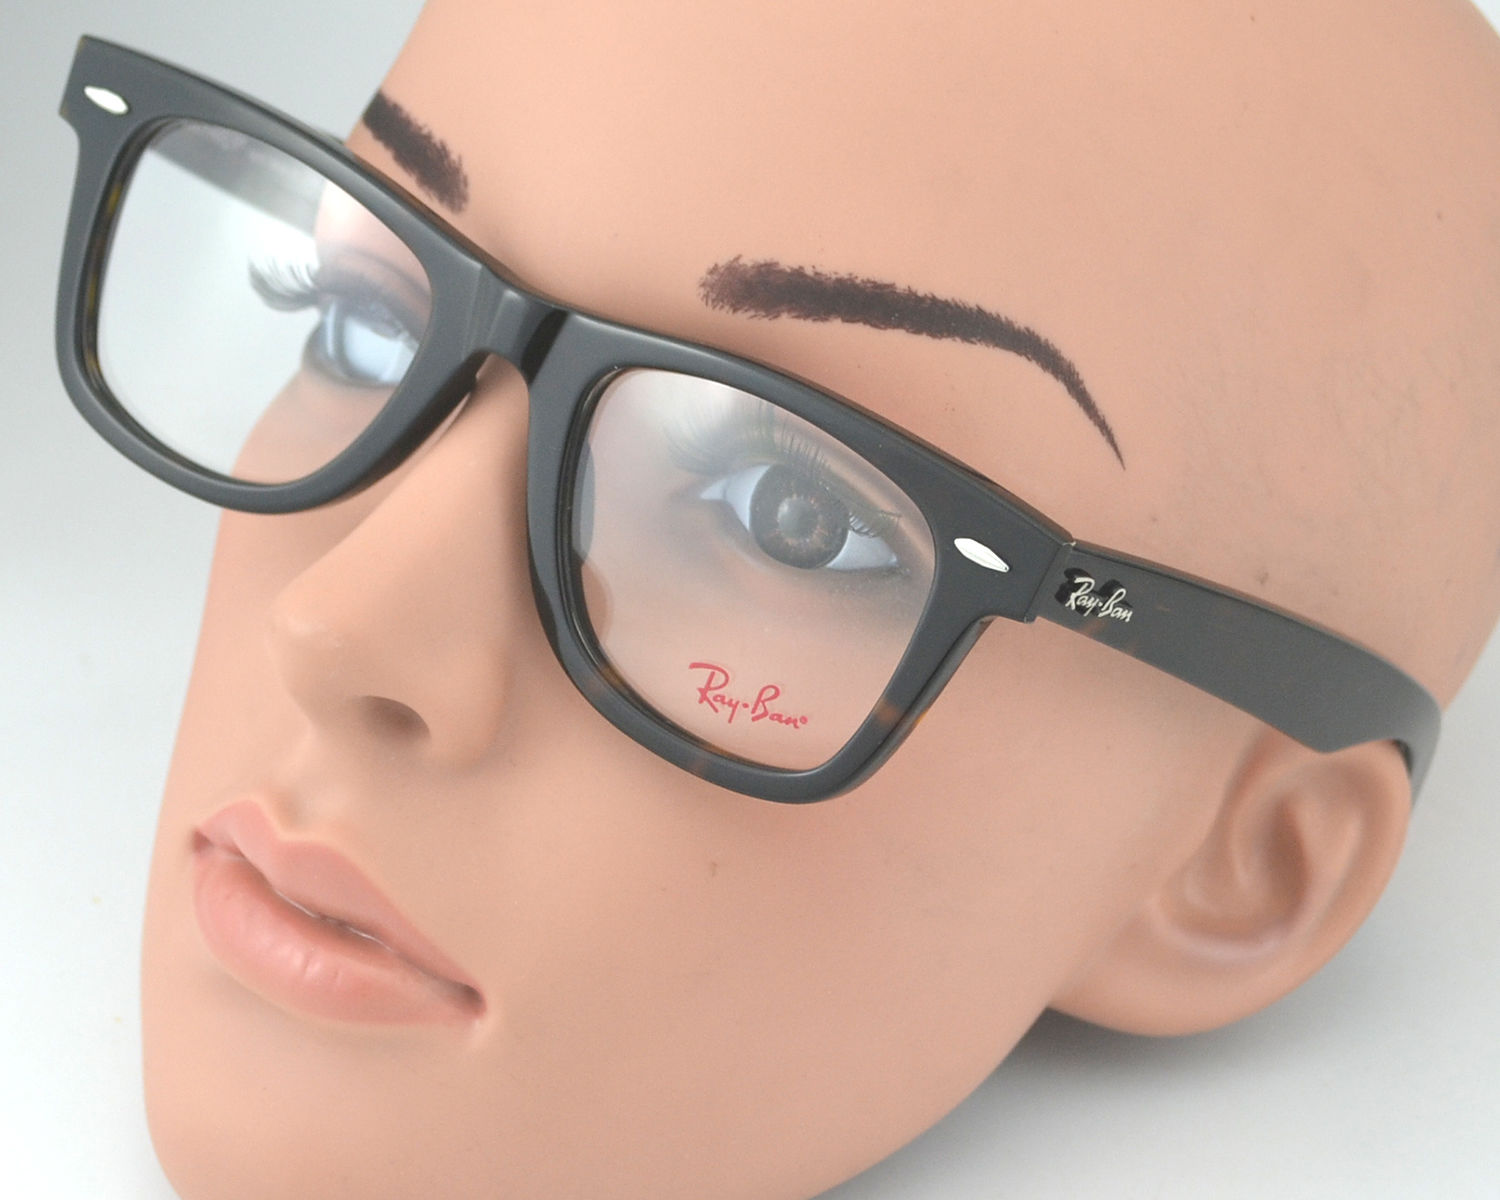 b84d4a1a9a ... czech ray ban rb5121 original wayfarer optics 2012 tortoise frame clear  glass lens optical glasses 50mm